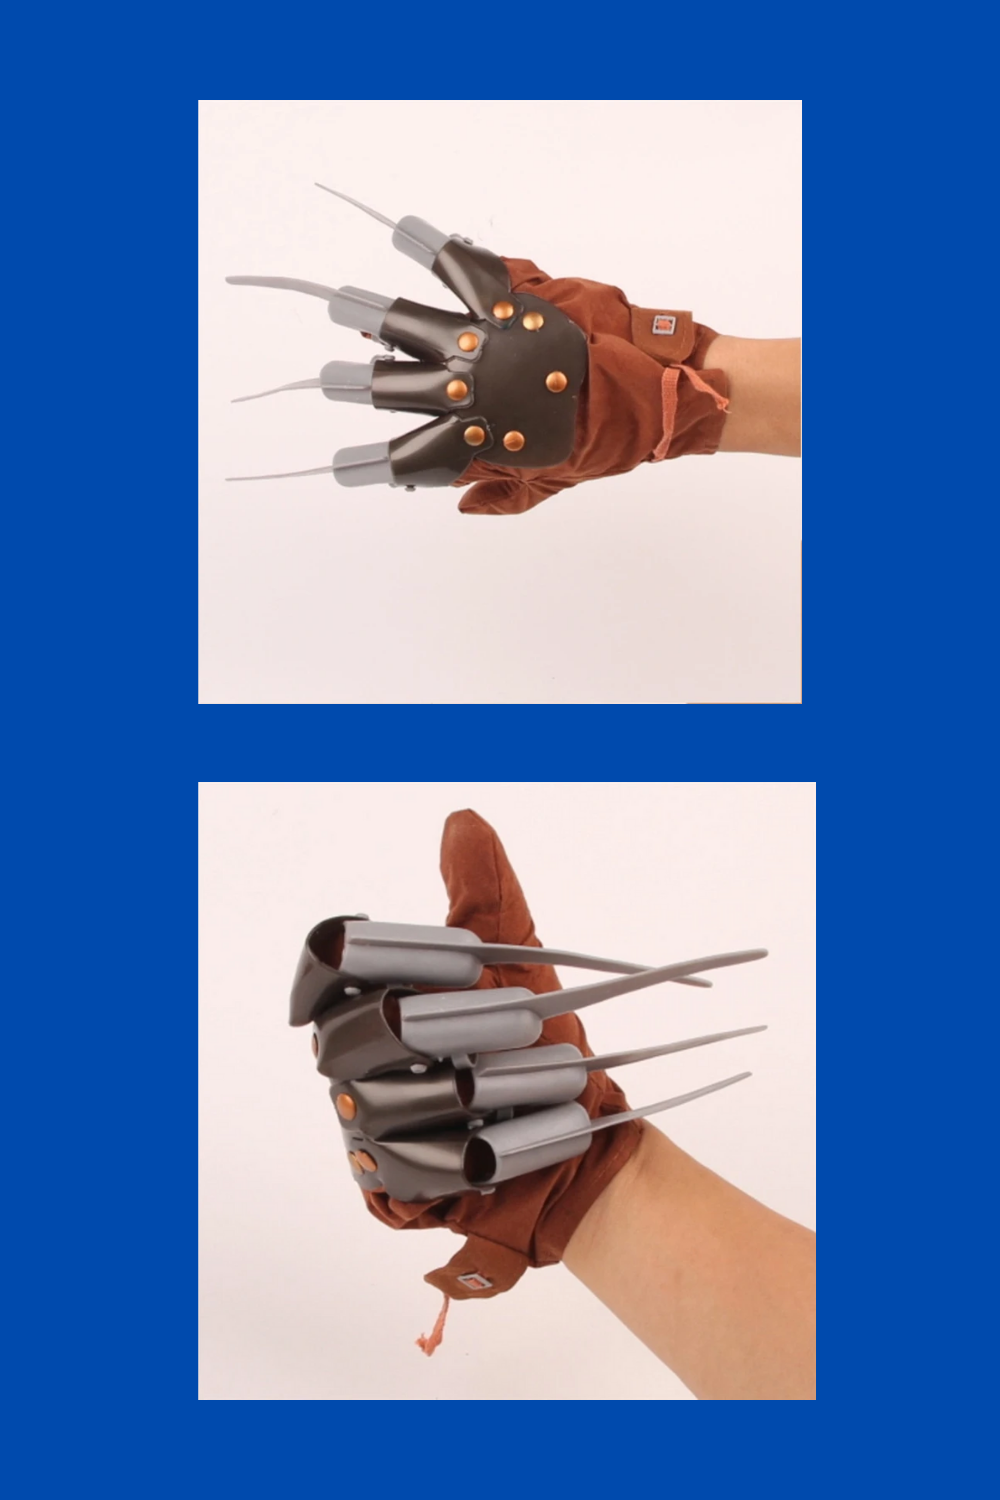 Halloween Specials Freddy Krueger Glove In 2020 Halloween Accessories Halloween Freddy Krueger See over 62 freddy krueger images on danbooru. pinterest